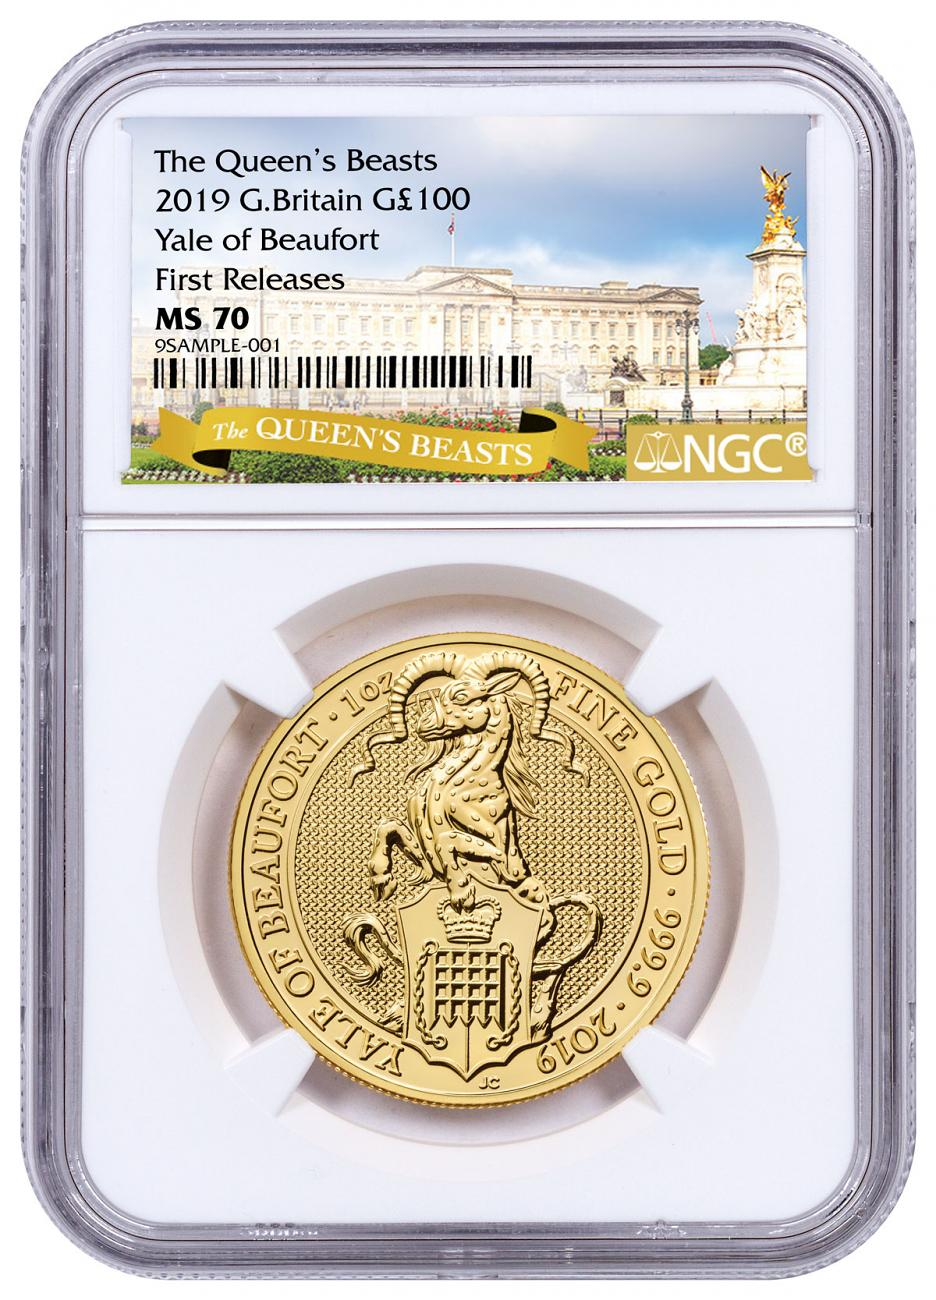 2019 Great Britain 1 oz Gold Queen's Beasts - The Yale of Beaufort £100 Coin NGC MS70 FR